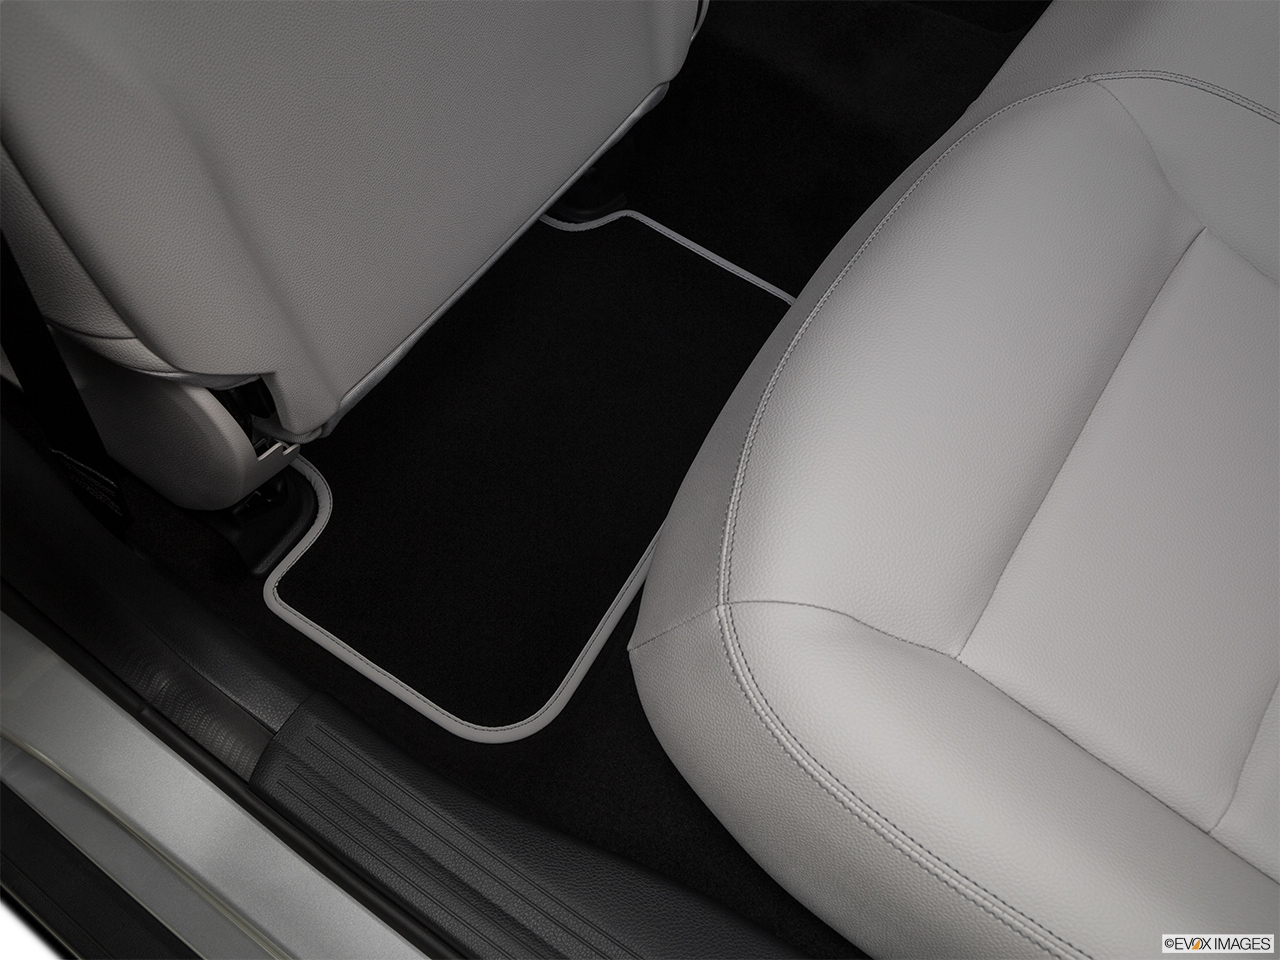 Car pictures list for mercedes benz gla 2017 250 4matic for 2017 mercedes benz gla 250 floor mats